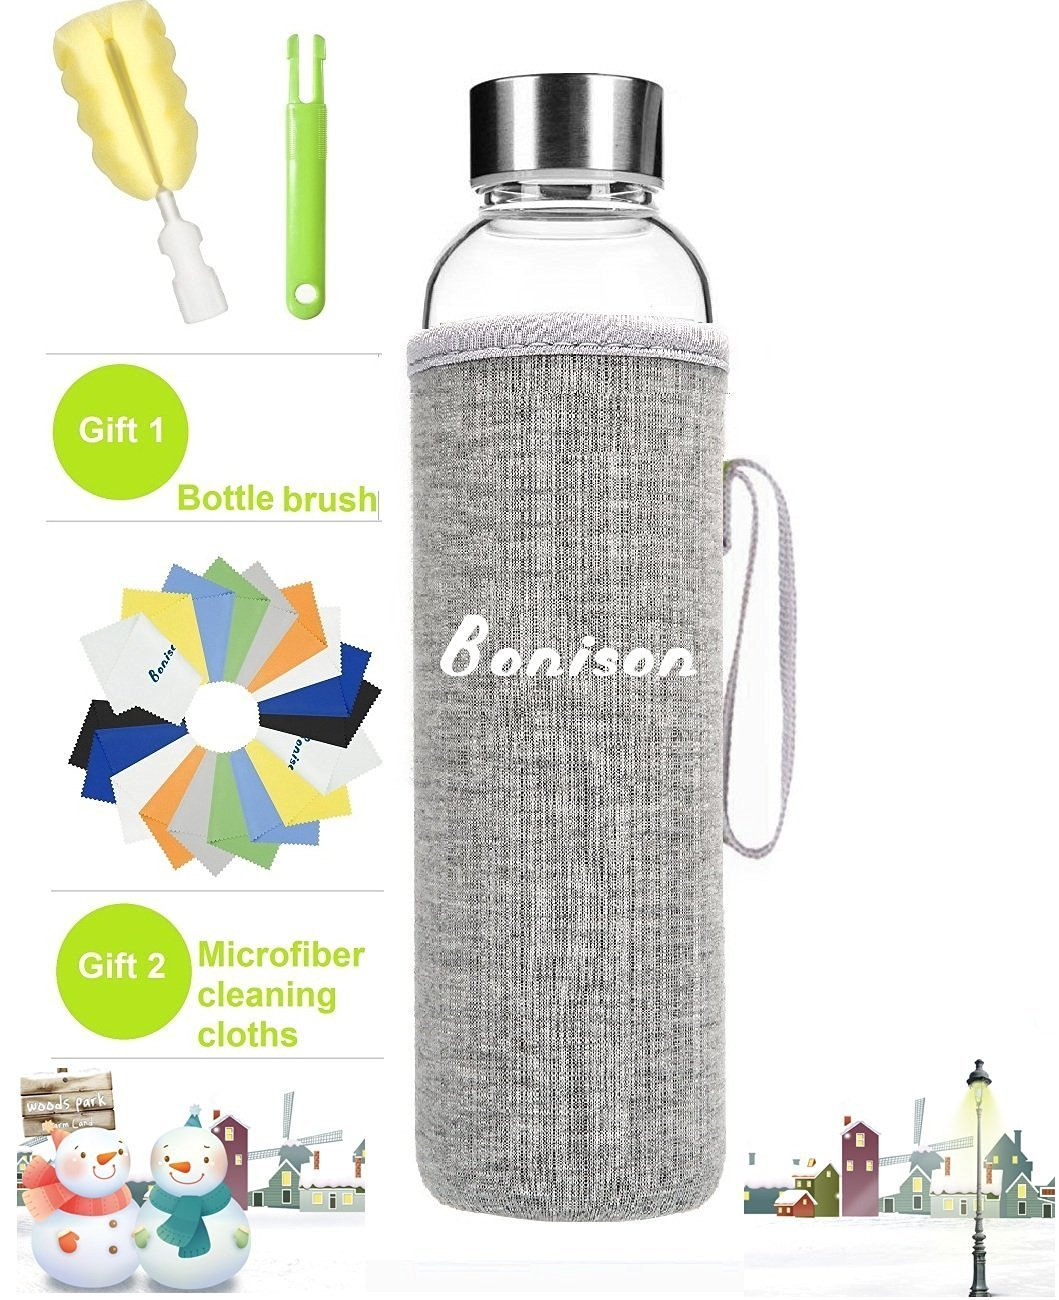 Newest 18 Oz Glass Bottle Top Level Quality Environmental Borosilicate Glass Water Bottle with Colorful Nylon Sleeve,BPA Free,Crysital Clear,Trendy Design BONISON 550-BLUE